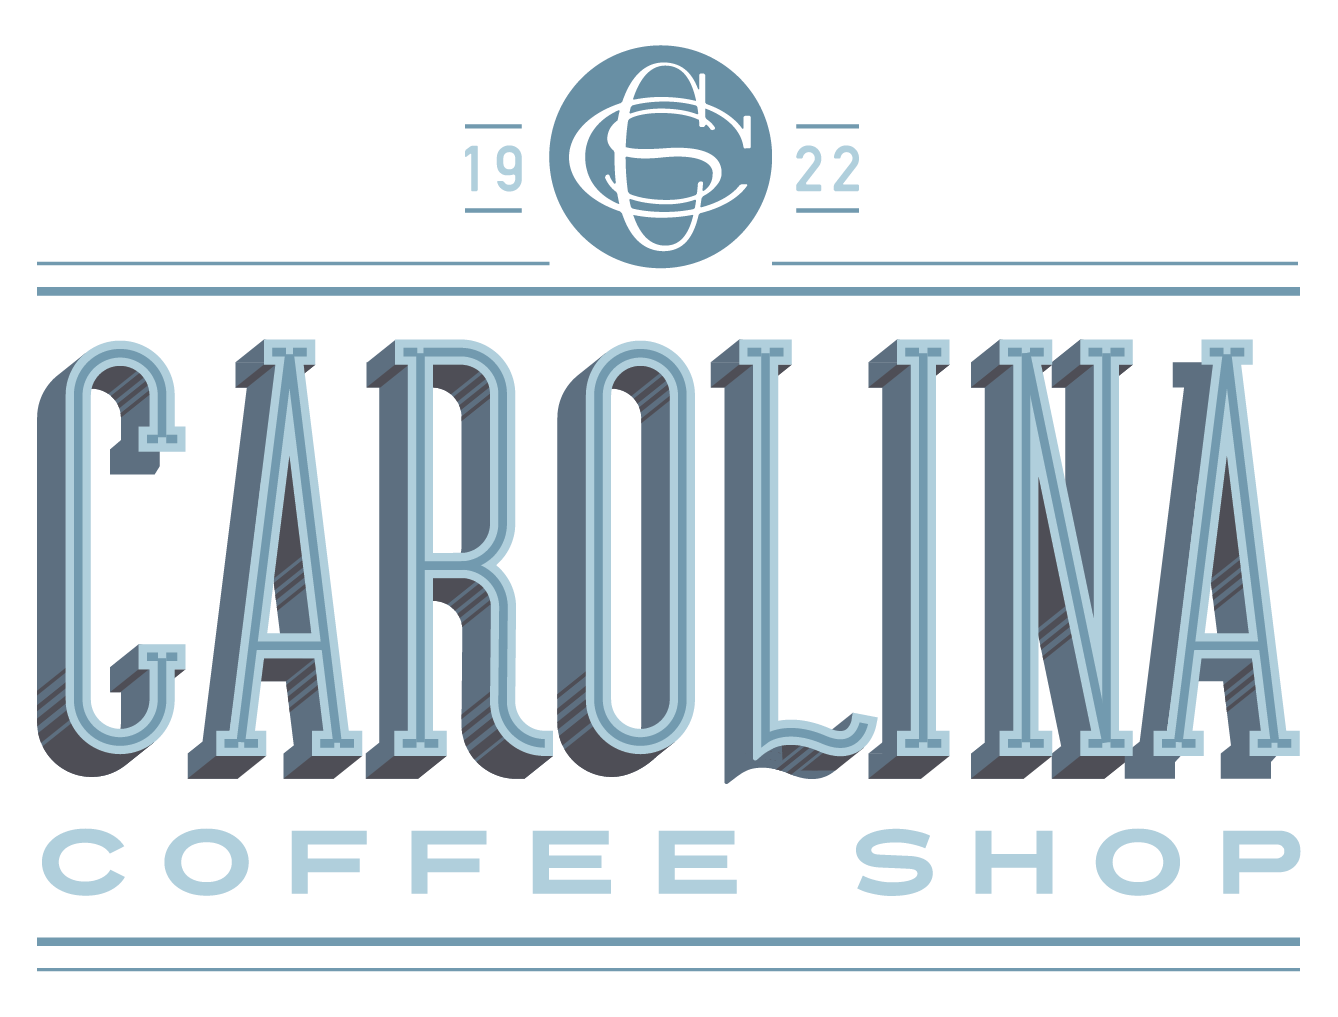 carolina_coffee_shop.png